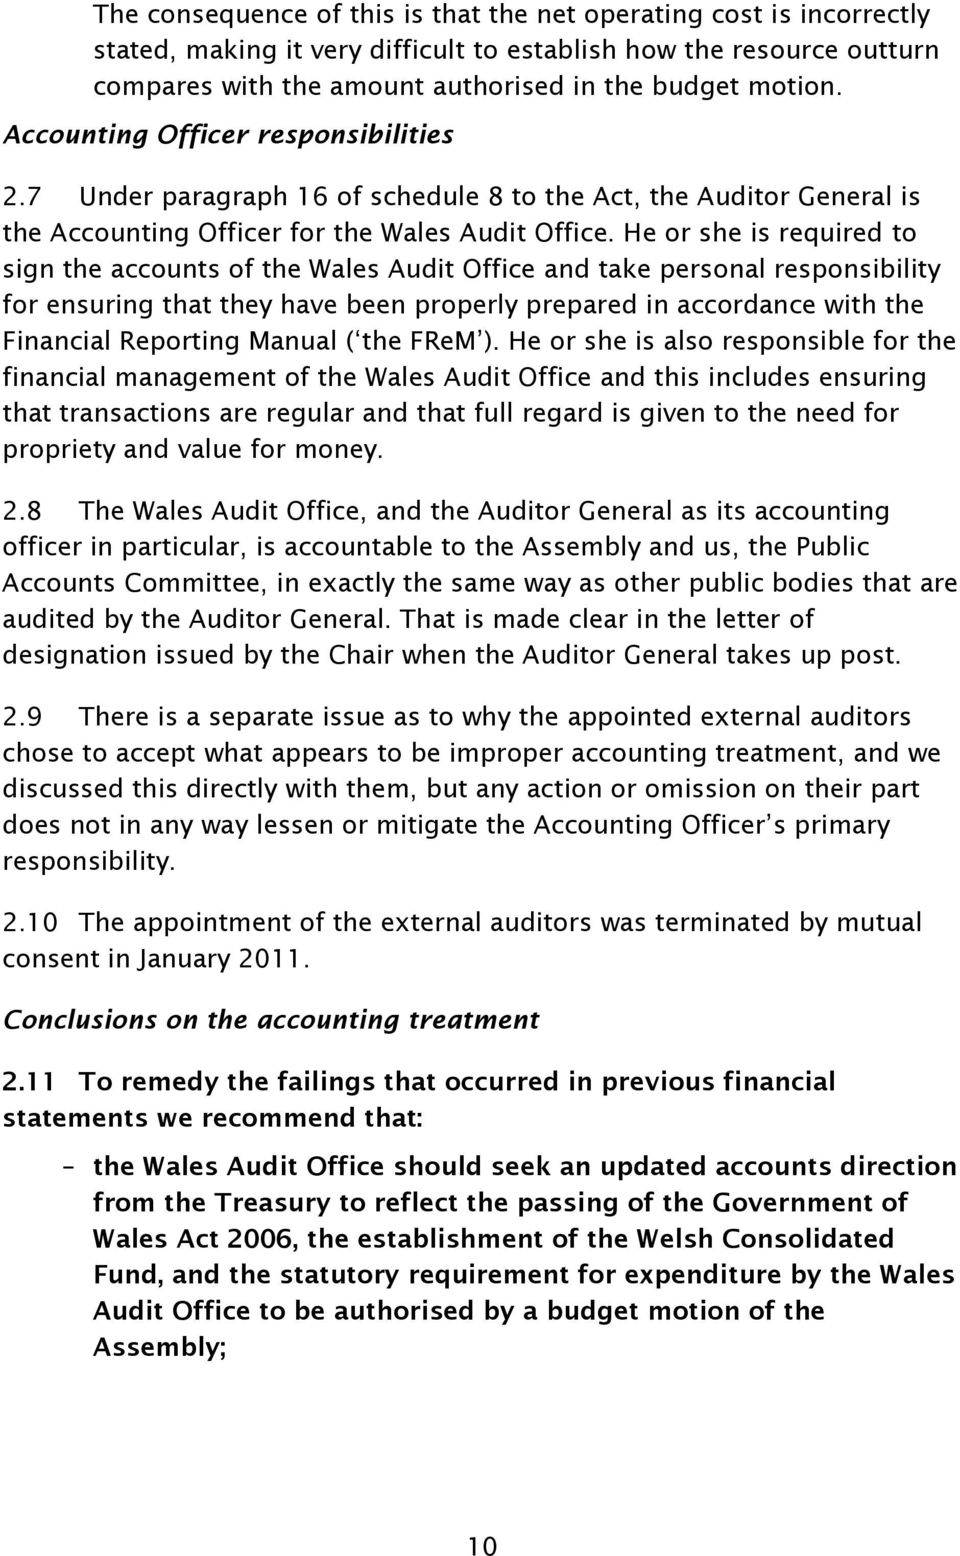 He or she is required to sign the accounts of the Wales Audit Office and take personal responsibility for ensuring that they have been properly prepared in accordance with the Financial Reporting